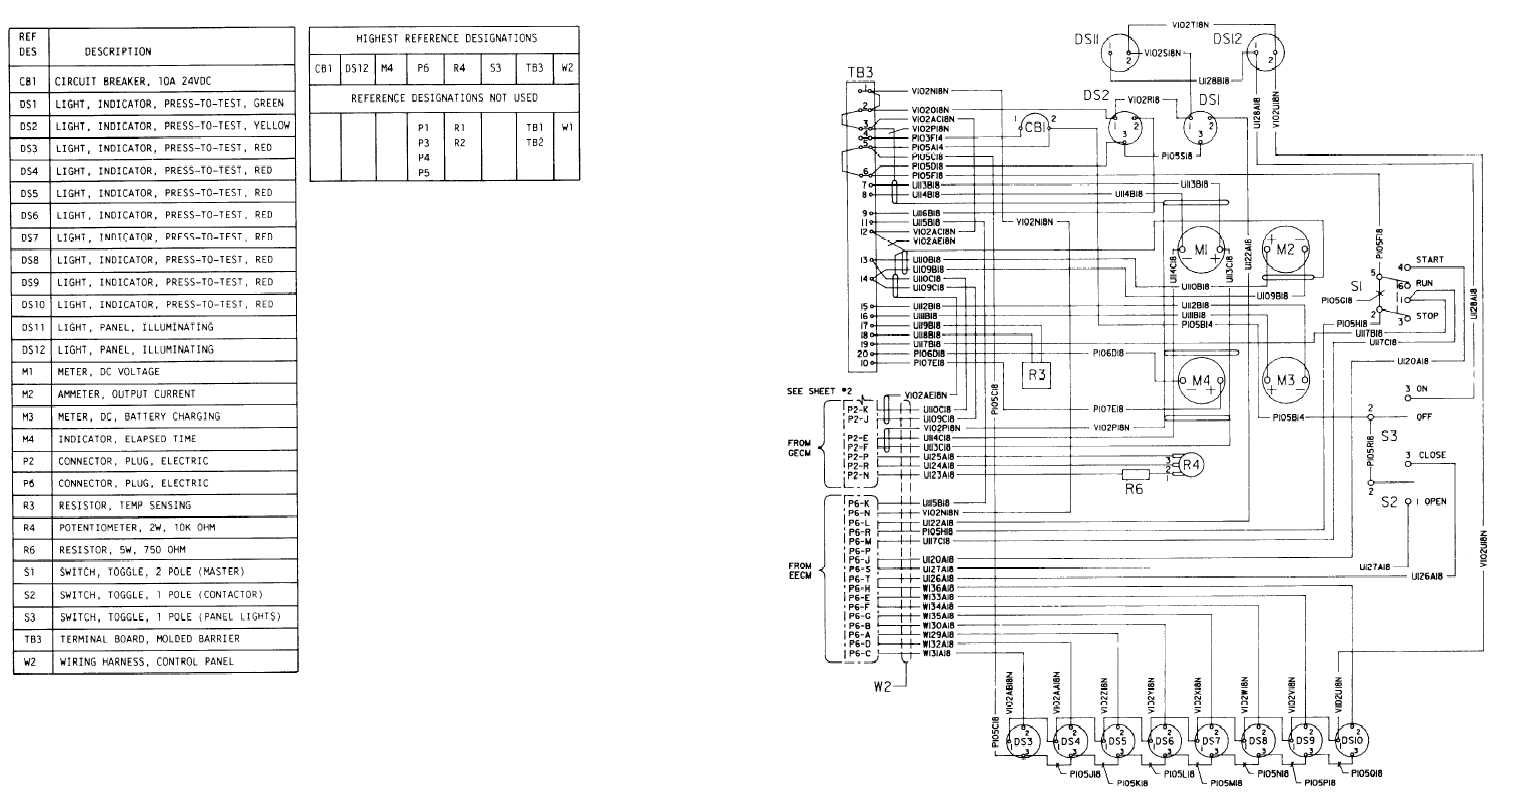 fire alarm control panel wiring diagram for | electrical ... veritas alarm panel wiring diagram